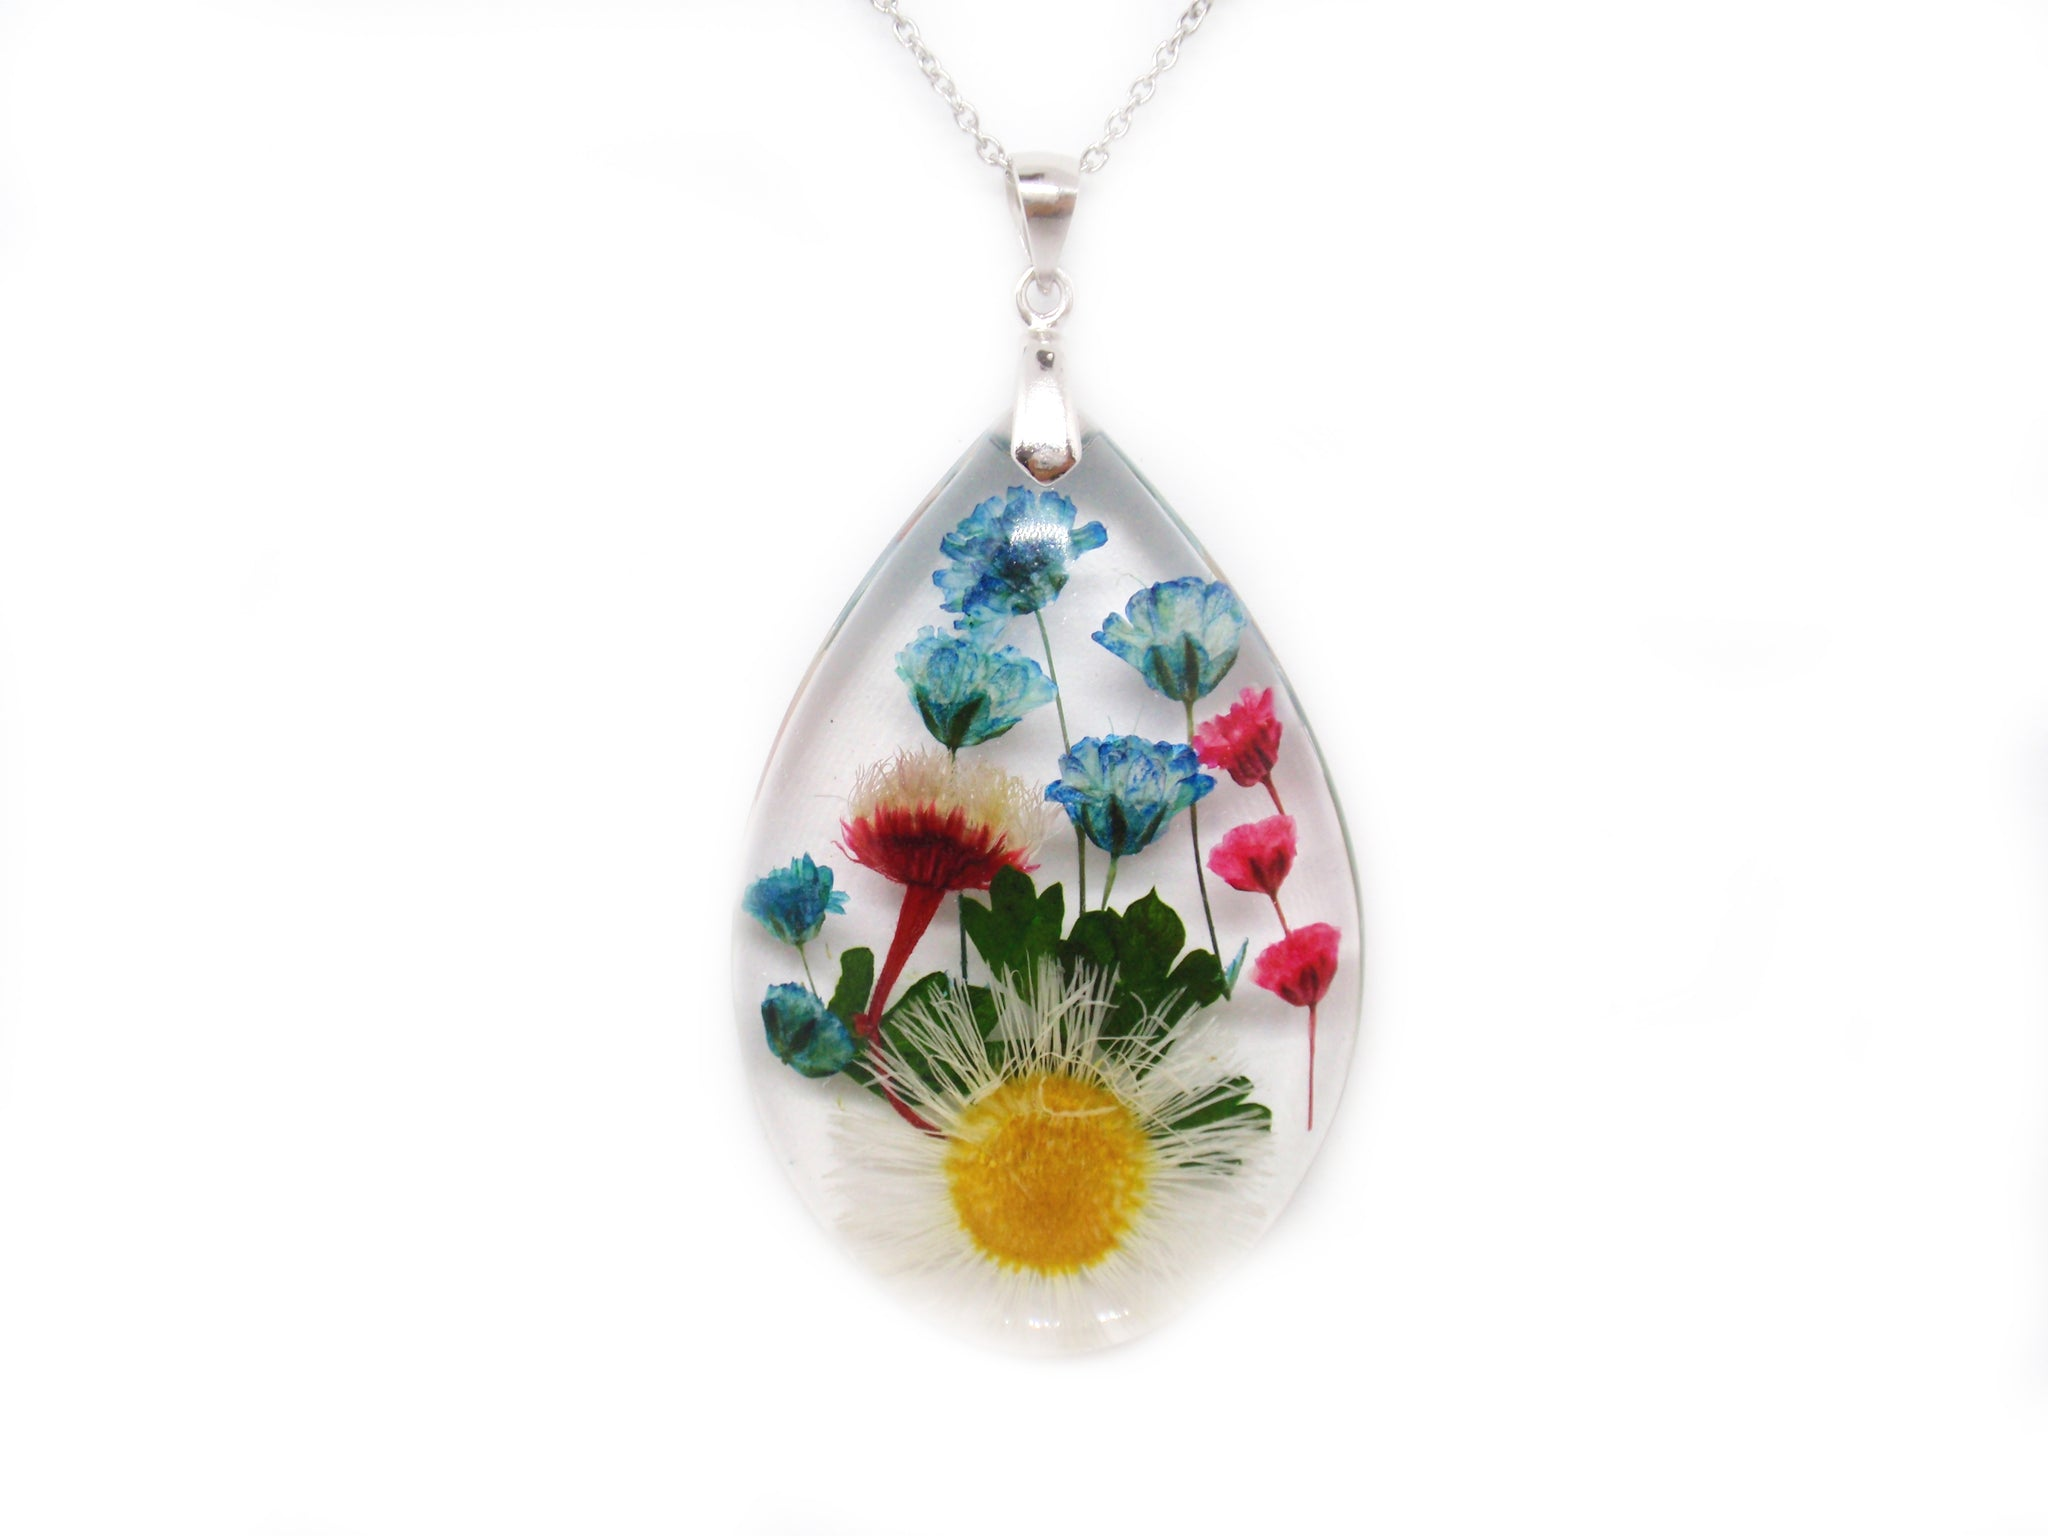 Flower necklace handmade jewelry